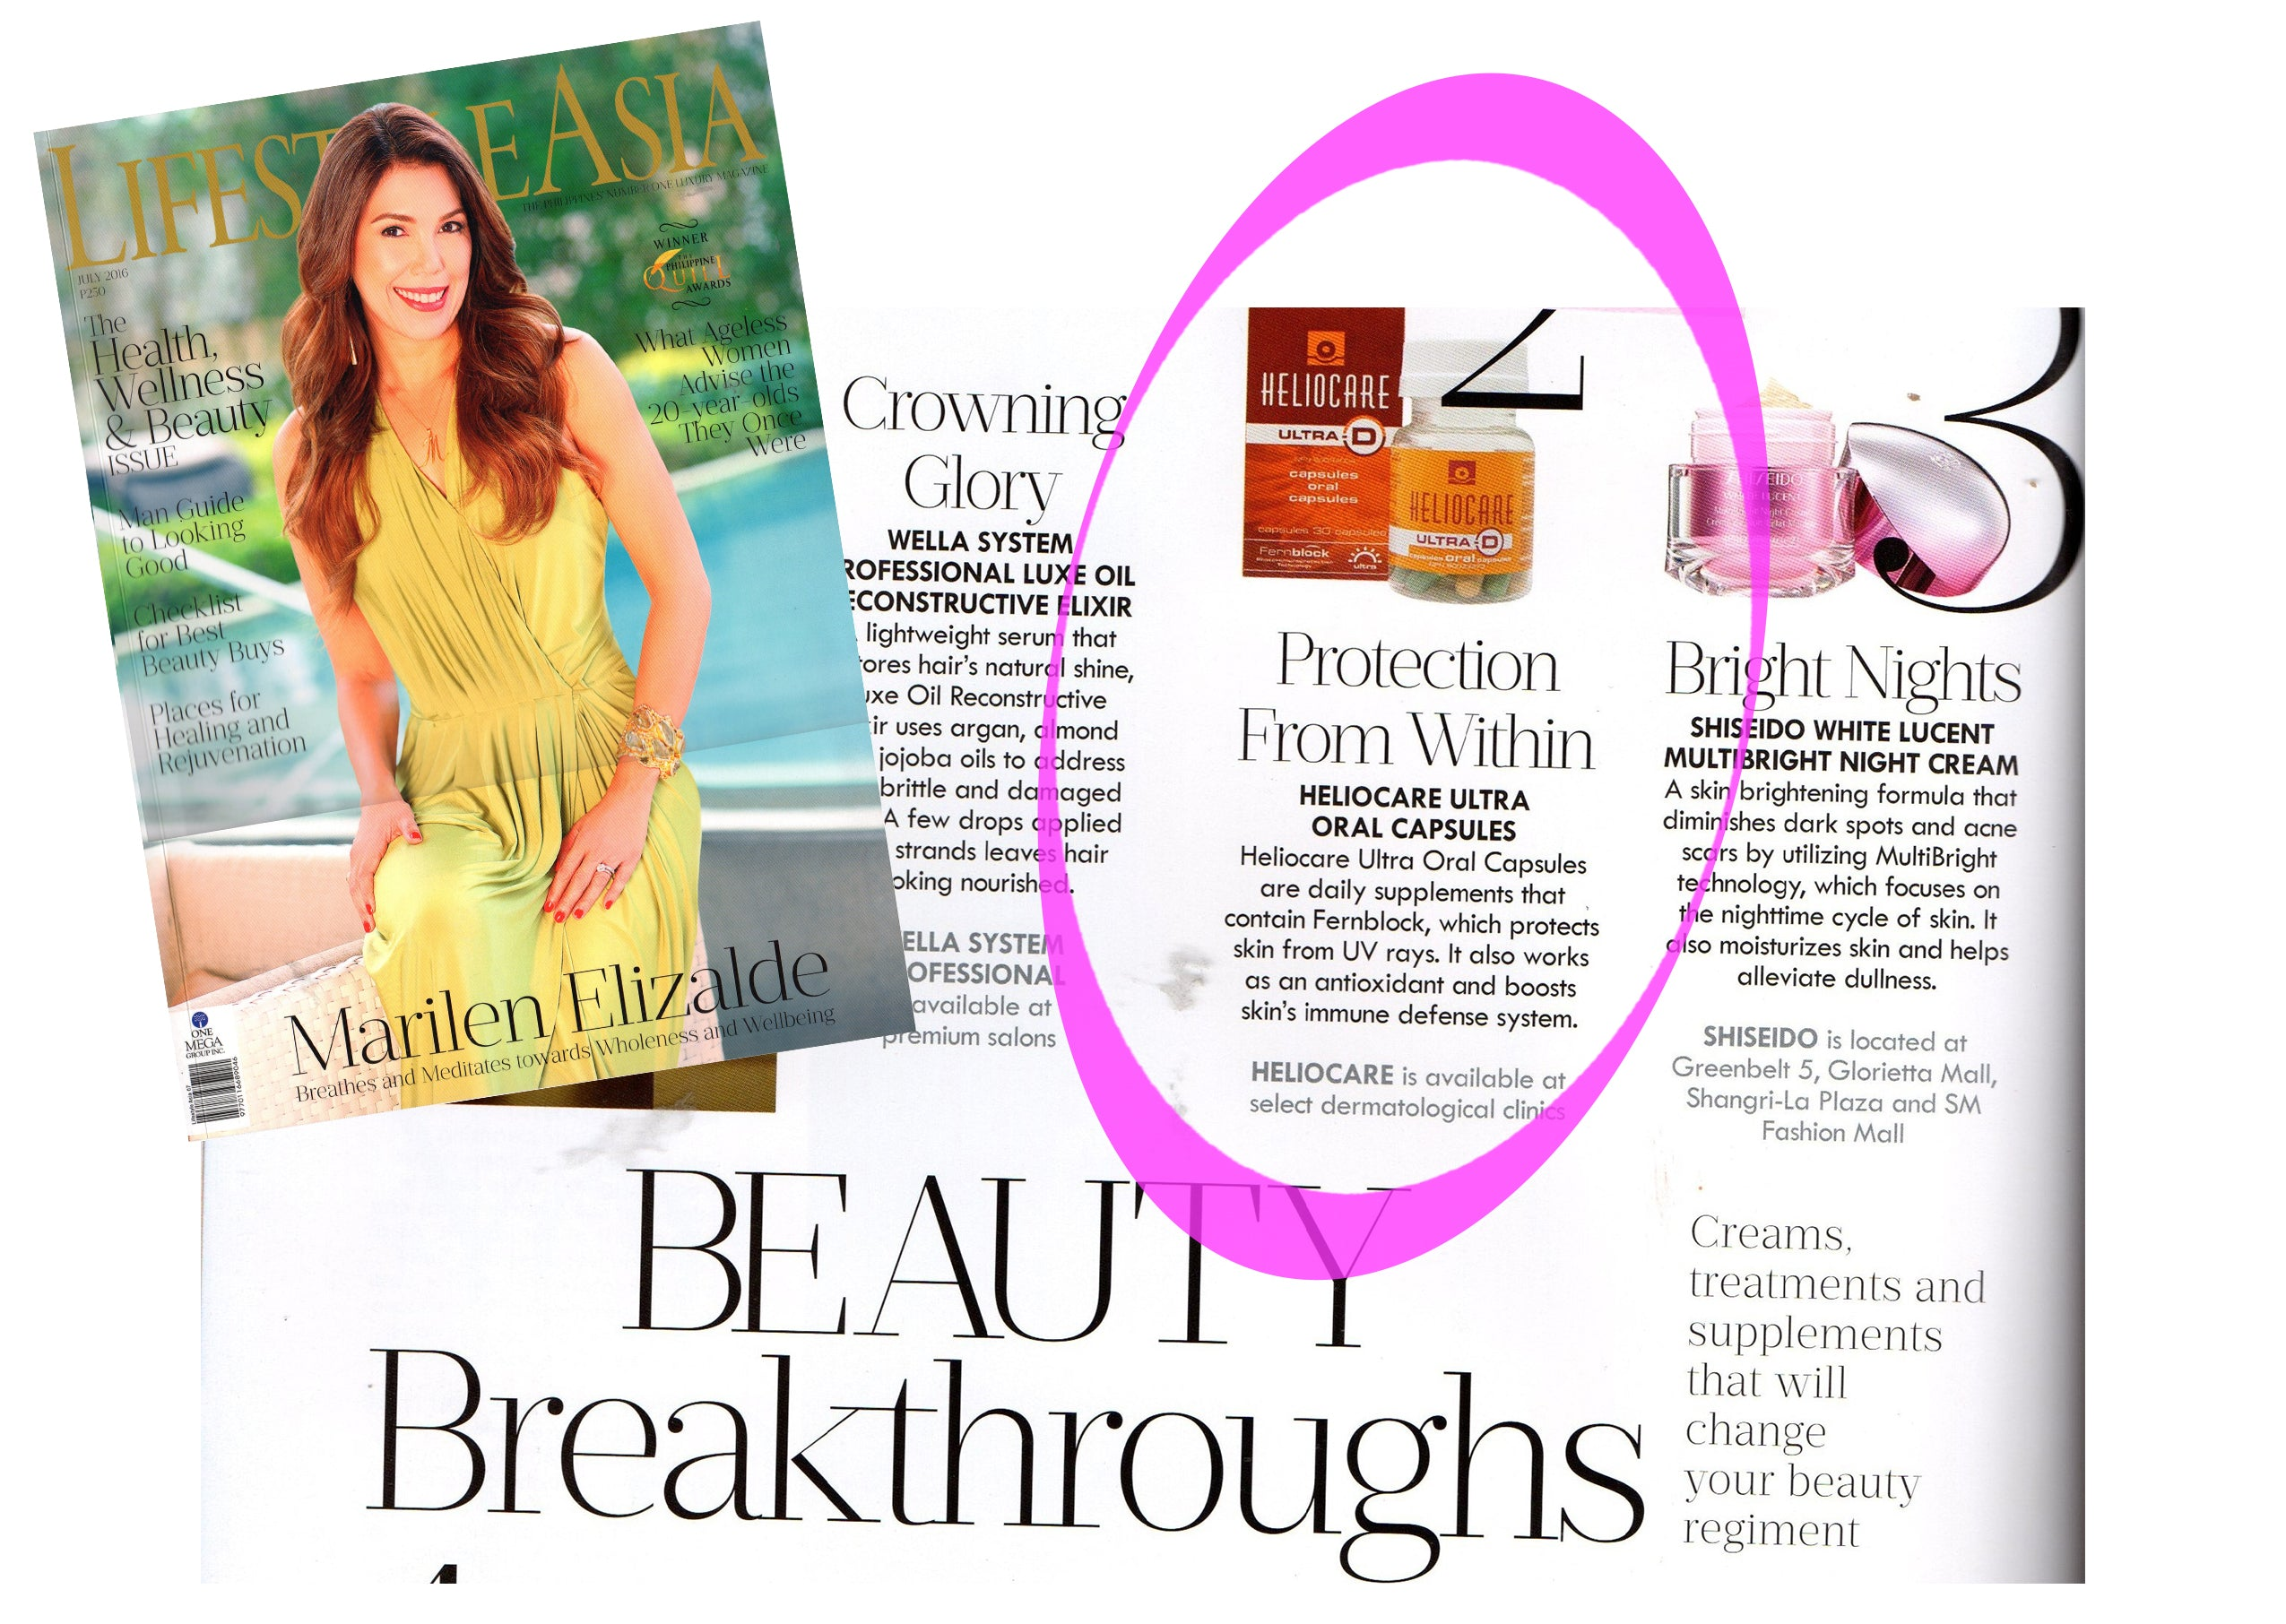 Beauty Breakthroughs - Protection from Within - Heliocare Ultra Oral Capsules